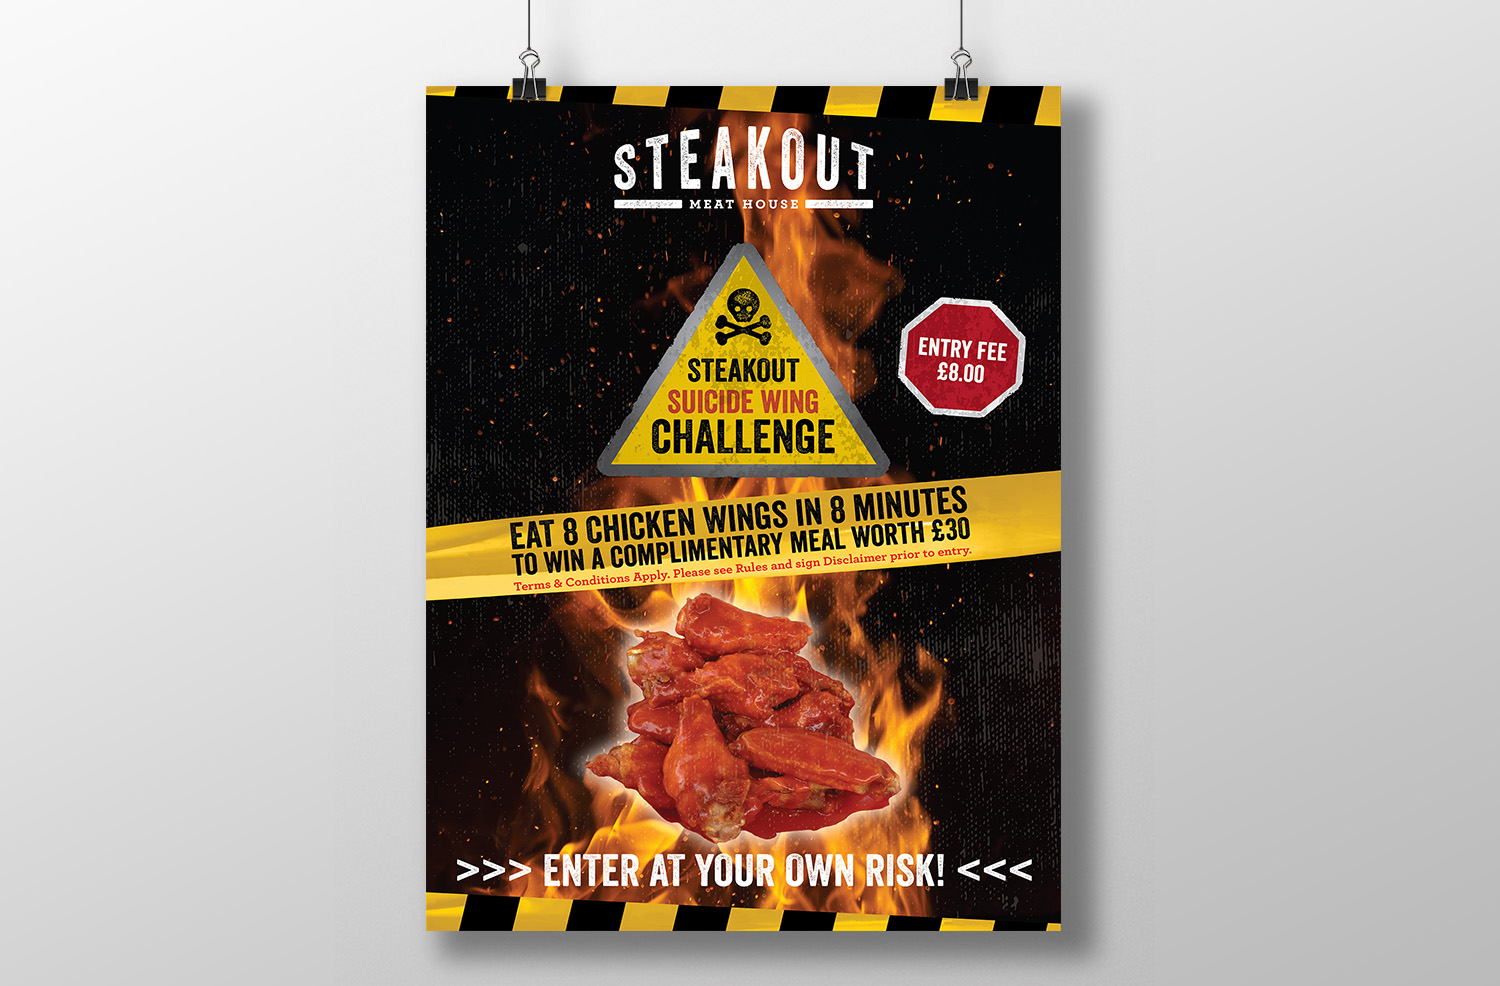 steakout-suicide-wing-challenge-poster.jpg